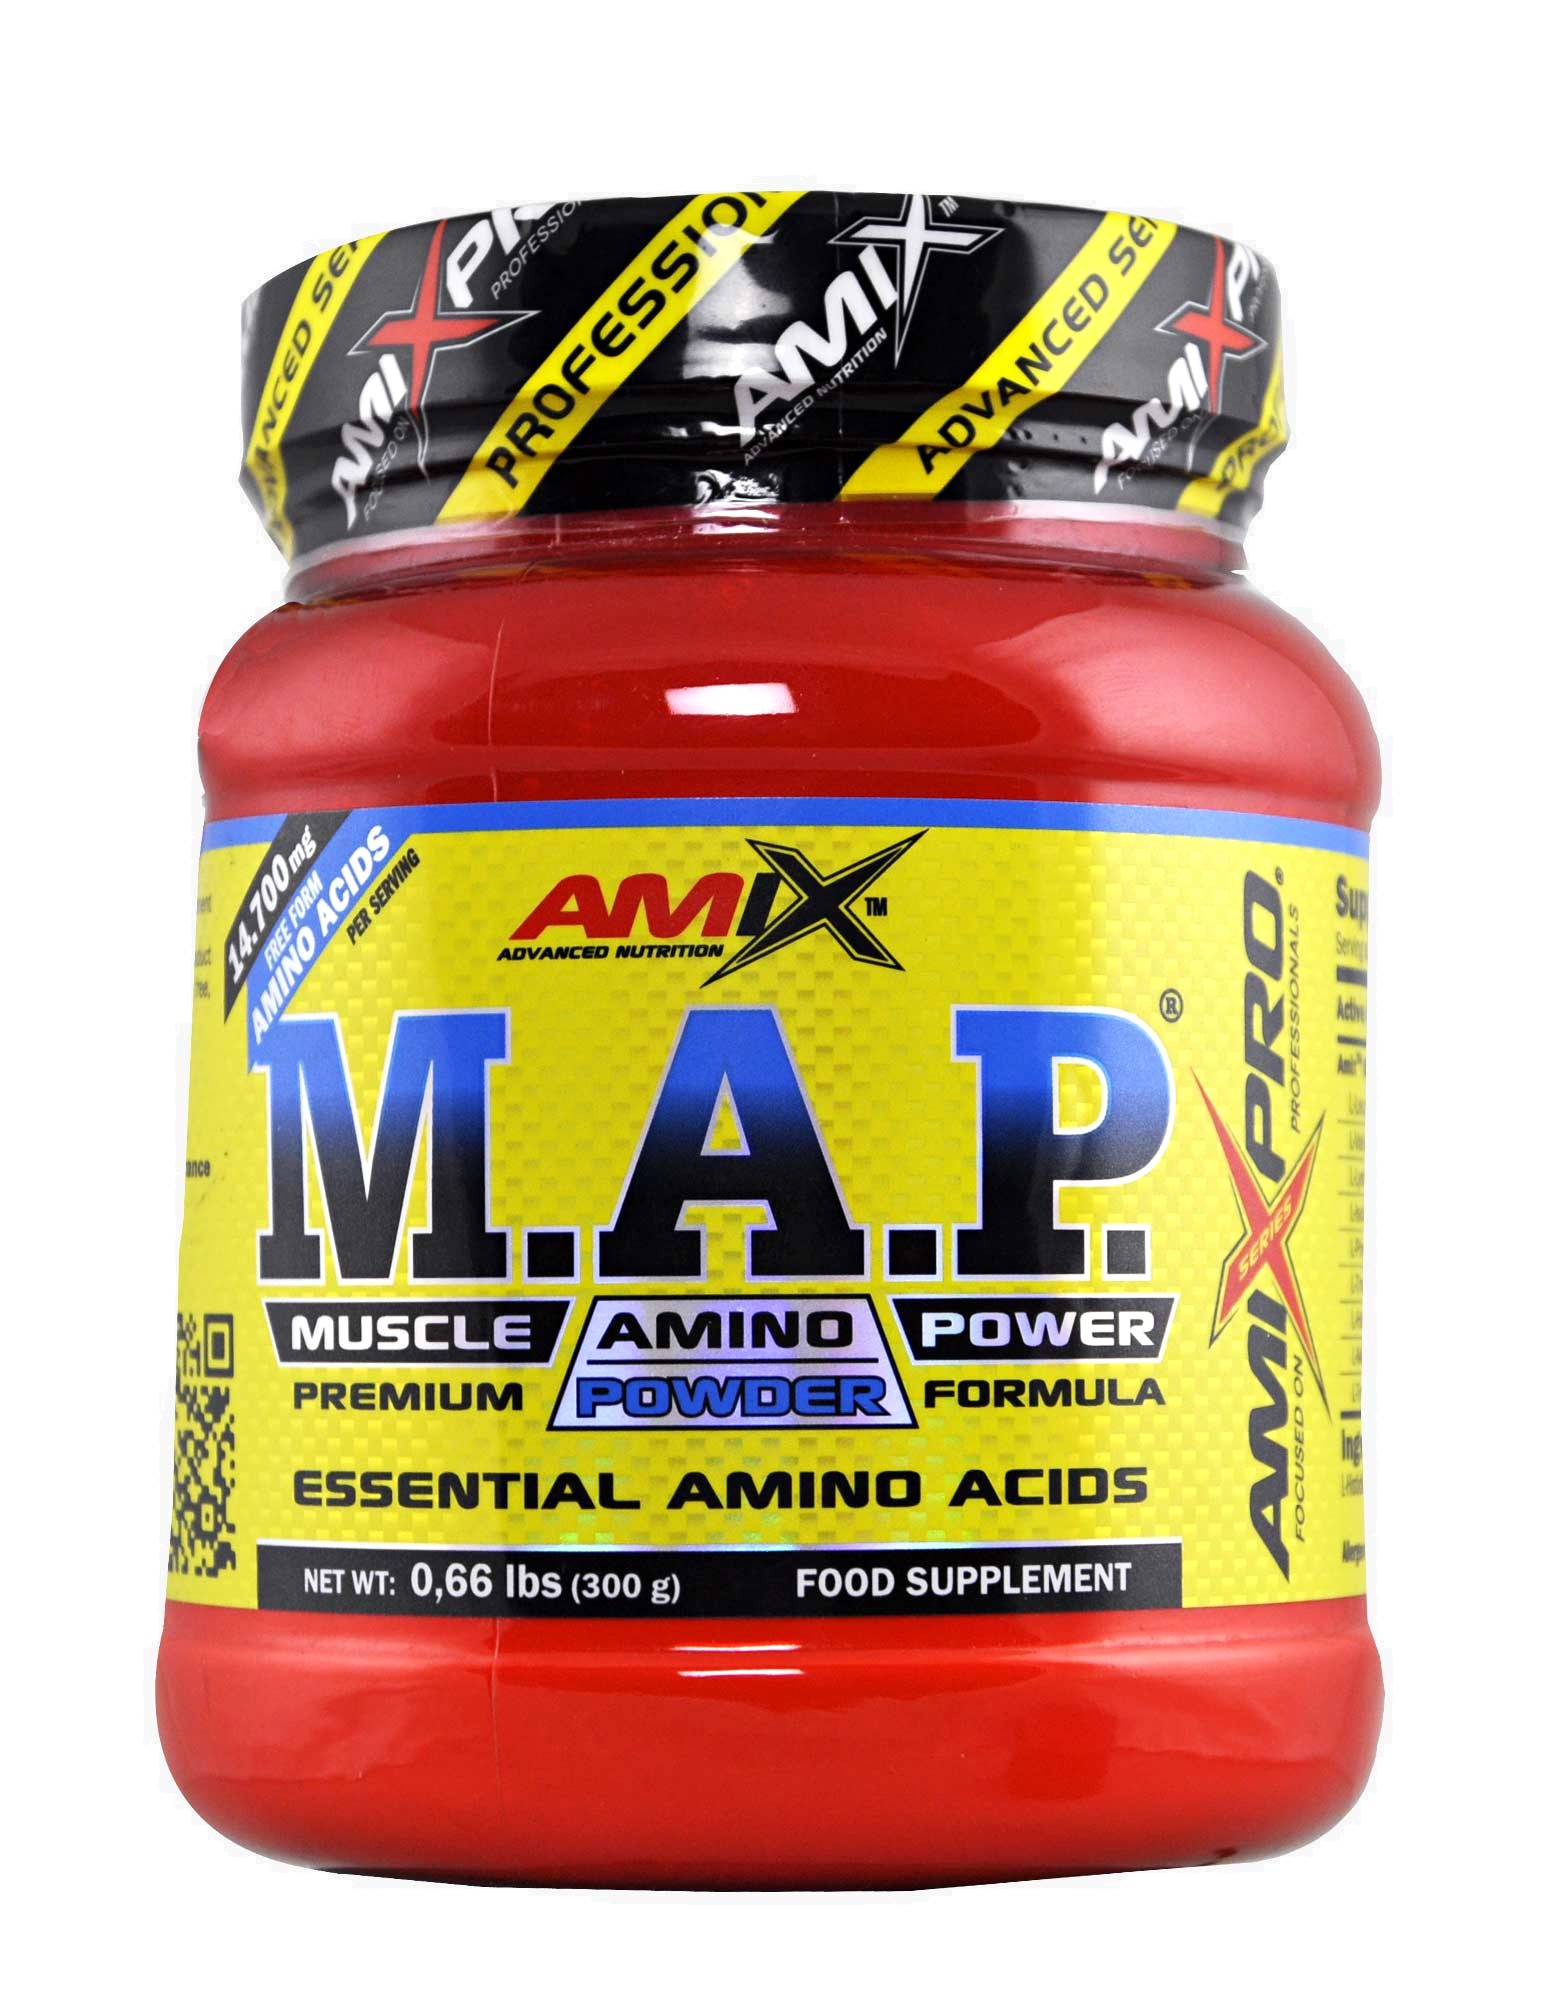 M.A.P. - Muscle Amino Power Powder by Amix, 300 grams ... on dhea supplements, vitamin supplements, amino acids cellucor, creatine supplements, lysine supplements, magnesium supplements, amino energy, protein supplements, amino acids in polypeptide, amino acids side effects, fat burning supplements, amino acids and their codons, s-adenosyl methionine supplements, glutamine supplements, amino acids before and after, amino acids form, amino acids connected, amino protein, amino acids weight loss, amino acids benefits,